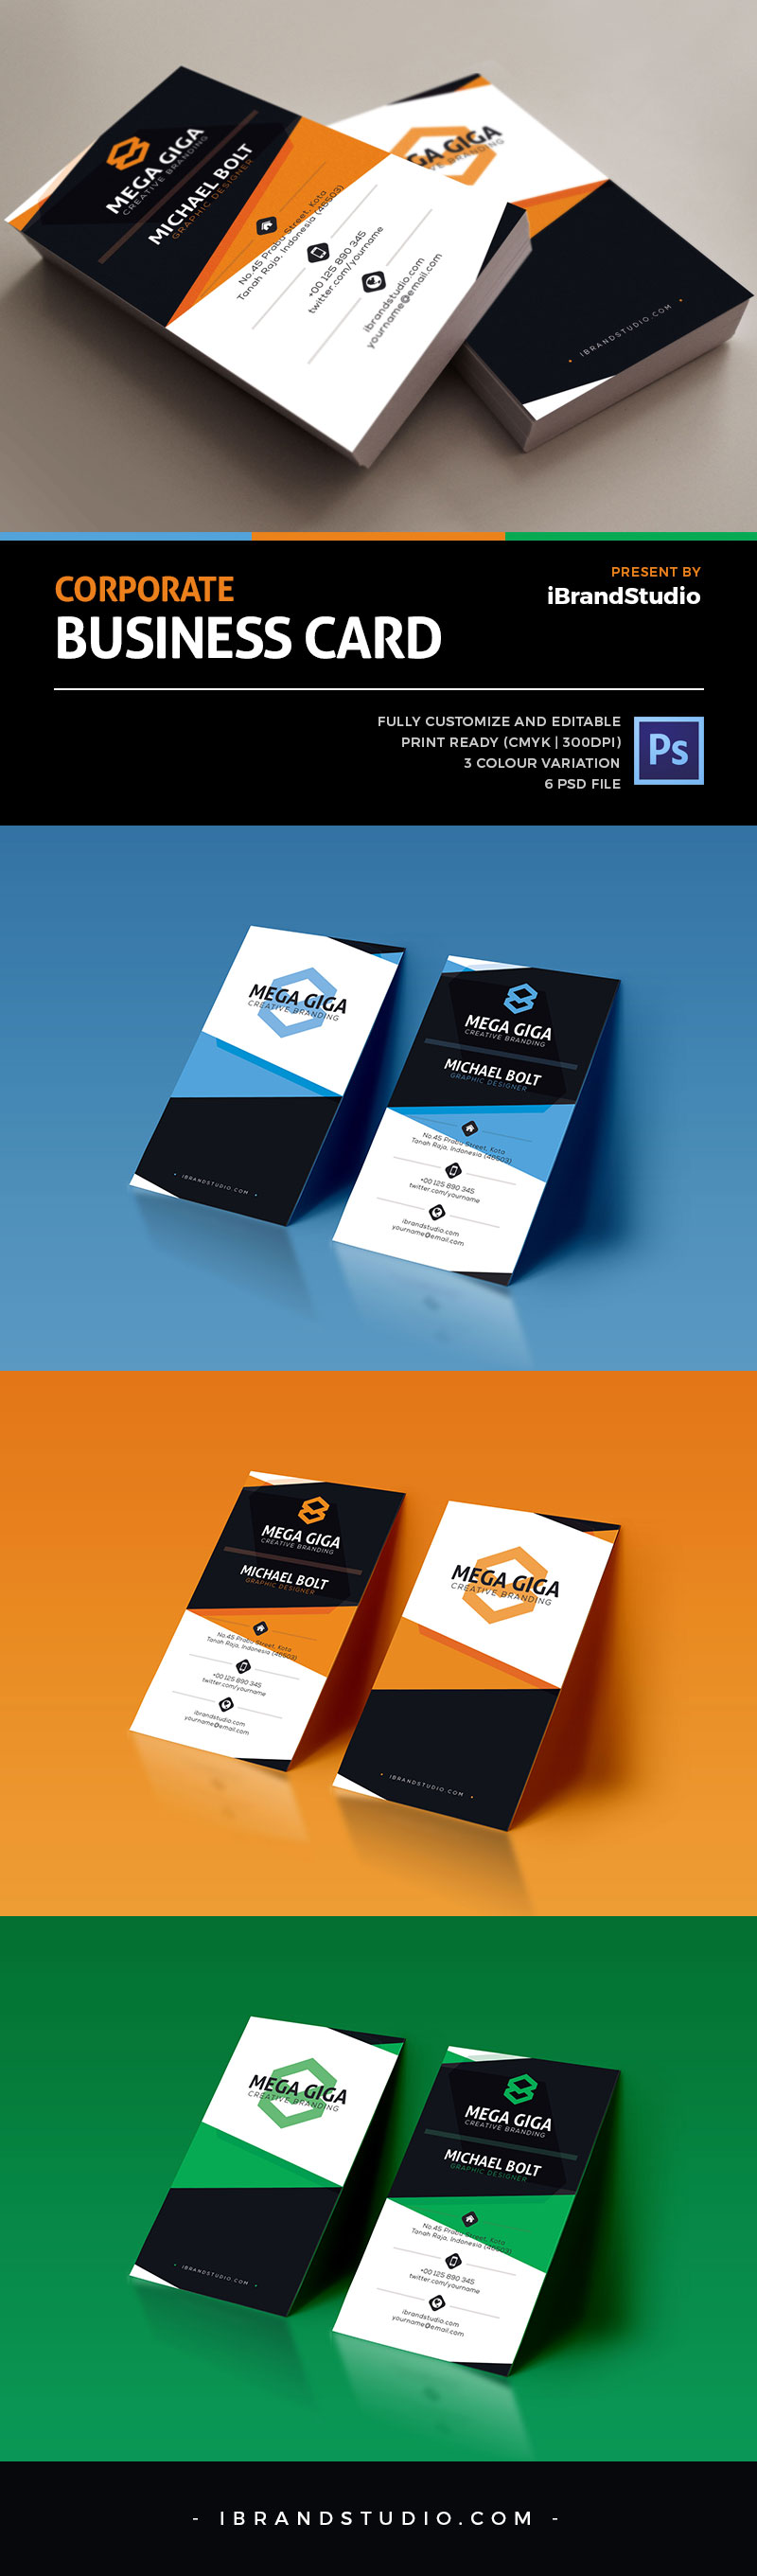 business card psd template Template for Free Download on